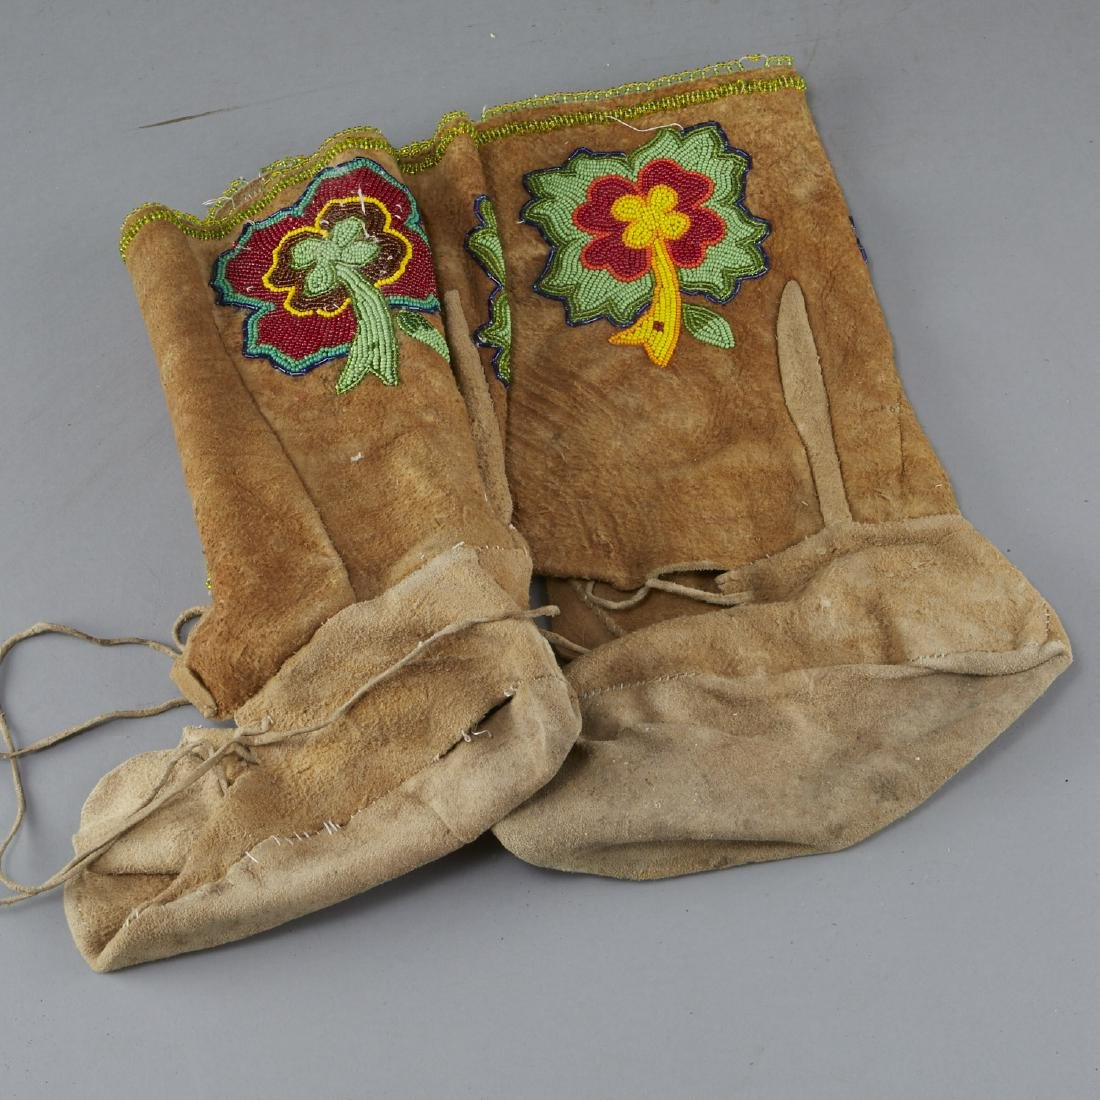 8 Pairs Beaded Moccasin Boots - 5